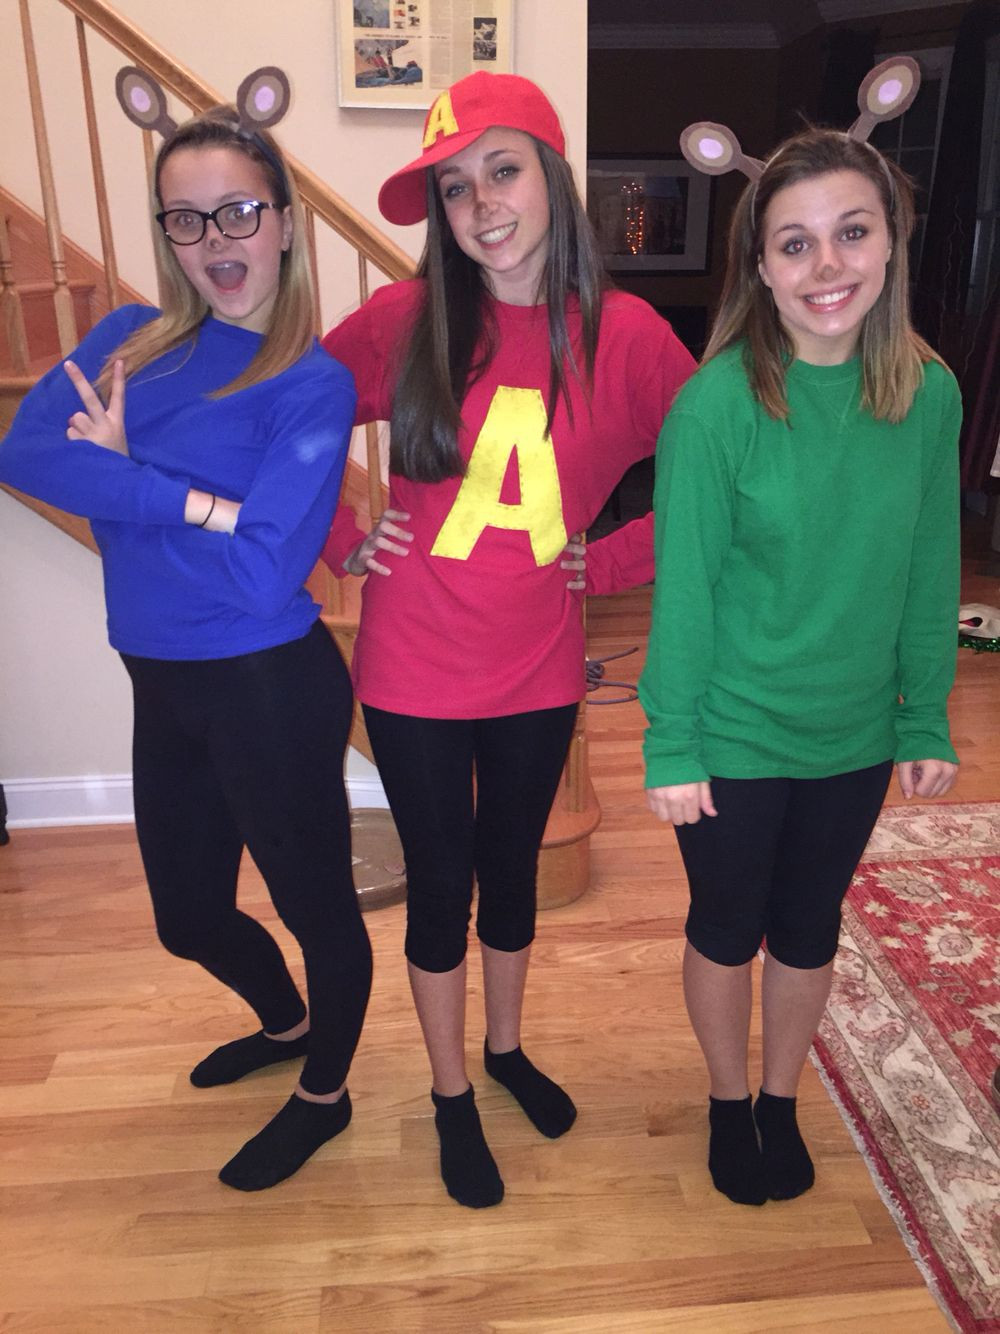 Best ideas about Alvin And The Chipmunks DIY Costume . Save or Pin Alvin and the Chipmunks DIY Halloween costume Now.